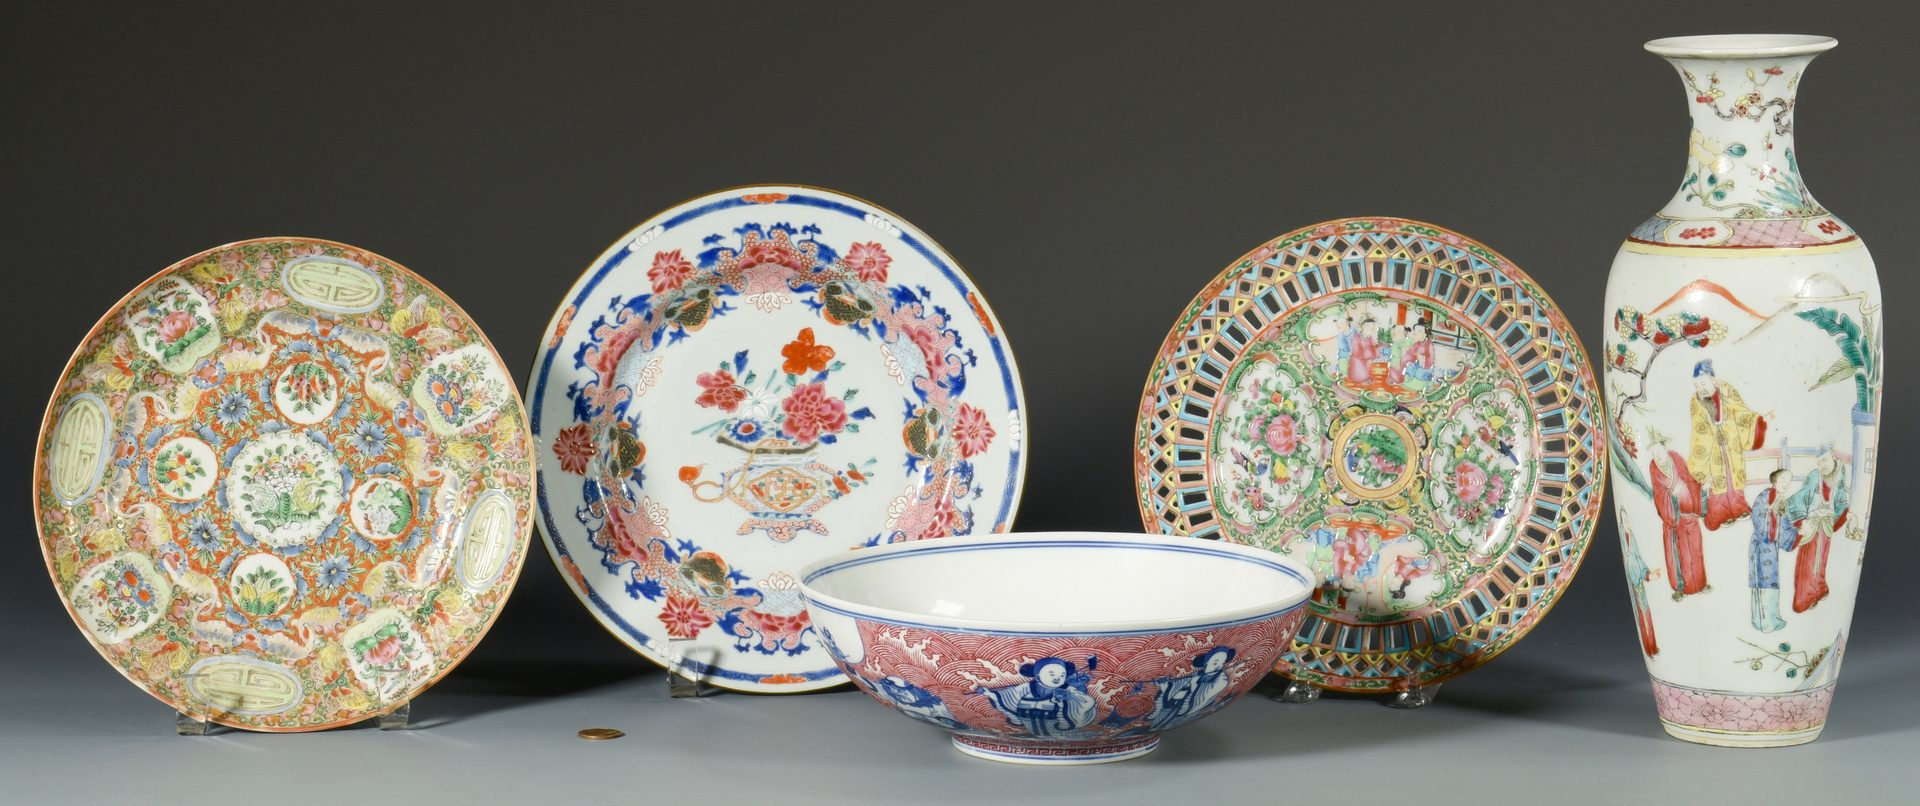 Lot 24: 5 pcs Chinese Export